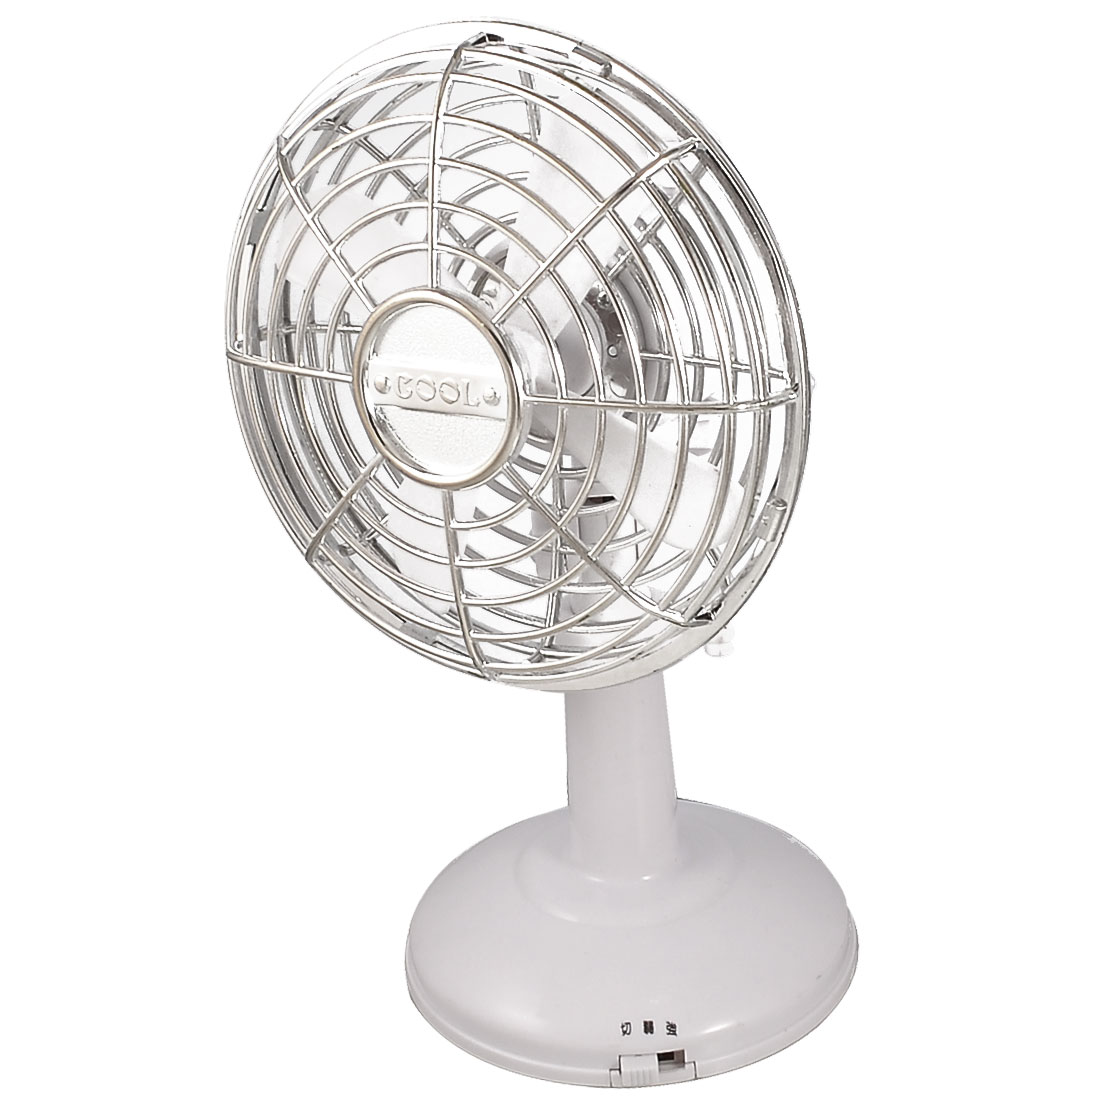 White Silver Tone Plastic Batteries USB Powered Oscillating Fan